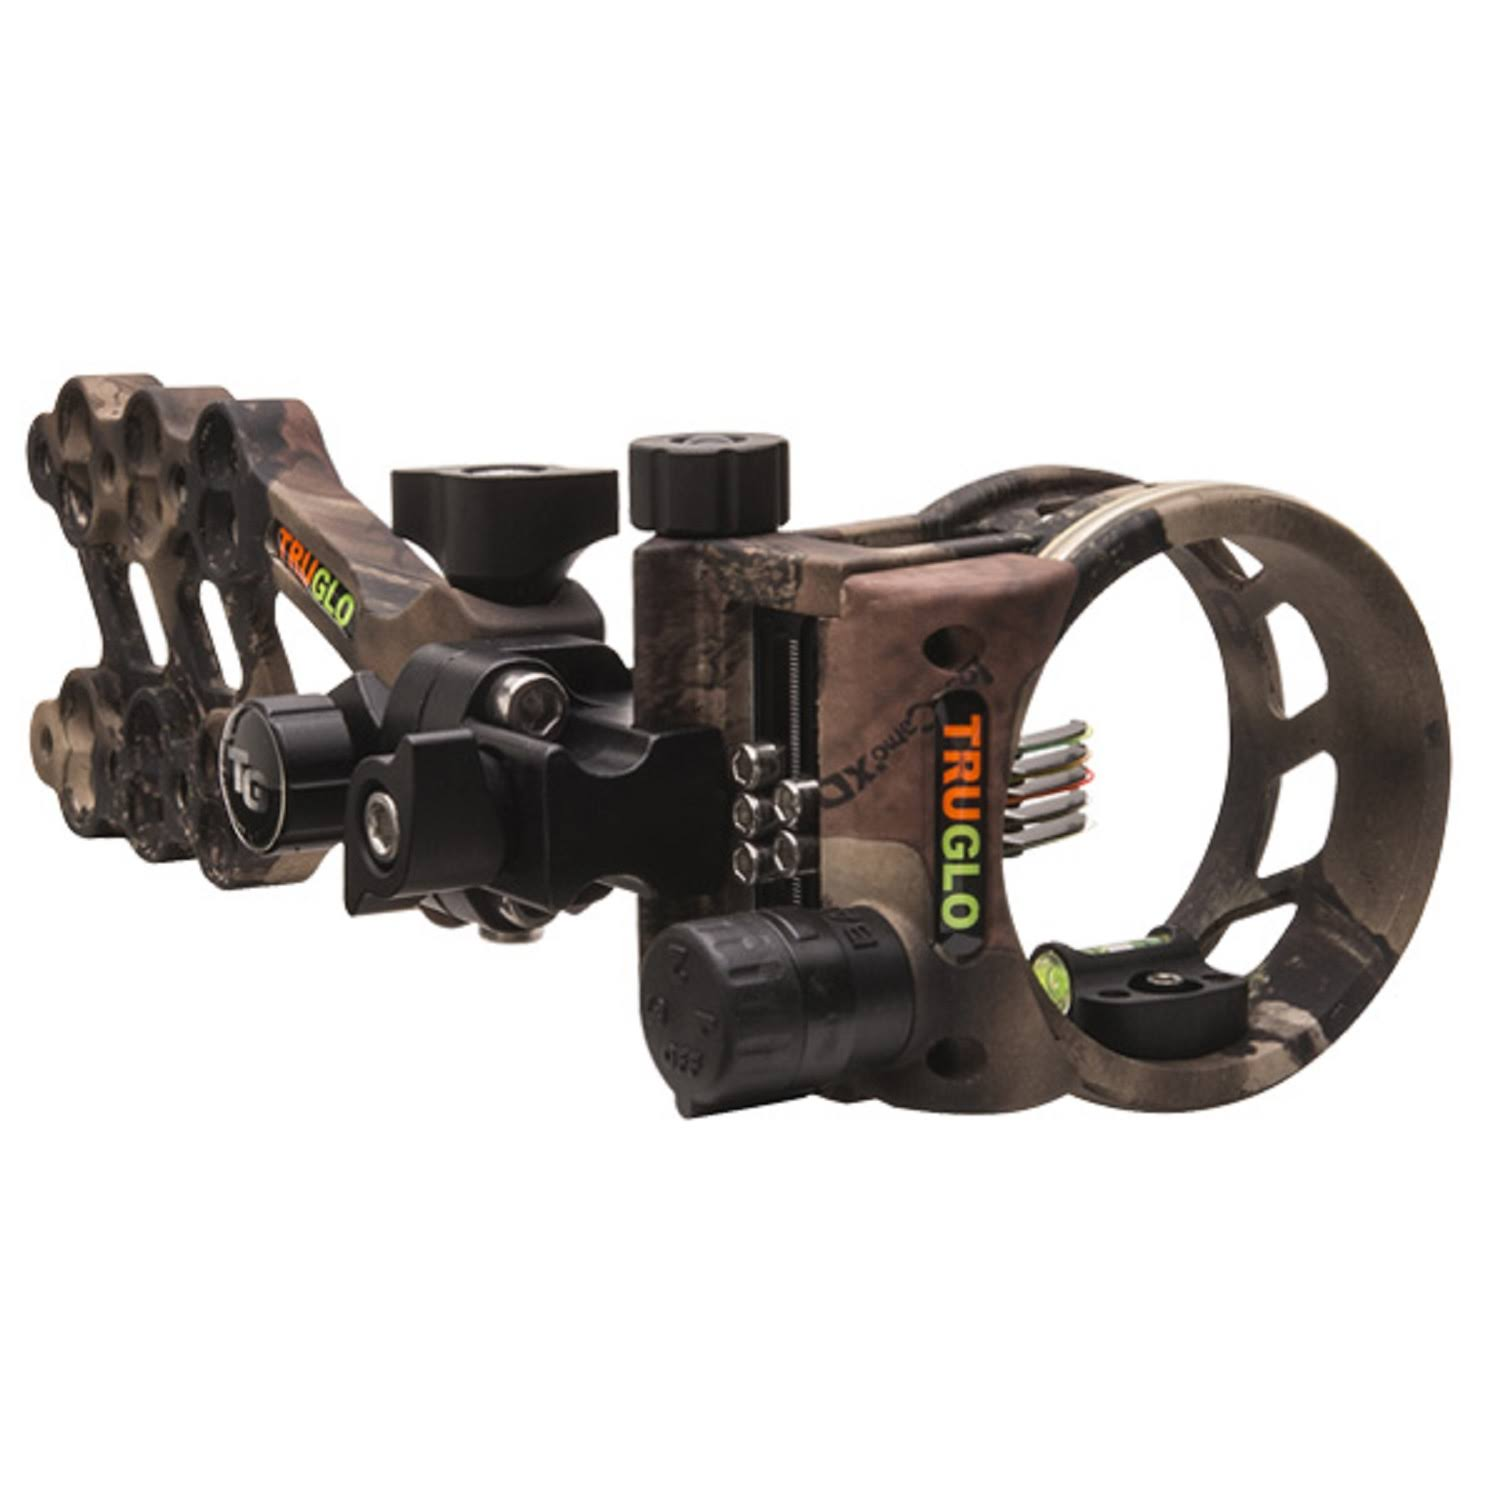 Truglo Hyper-strike 5 Pin DDP Sight - Lost XD Camo